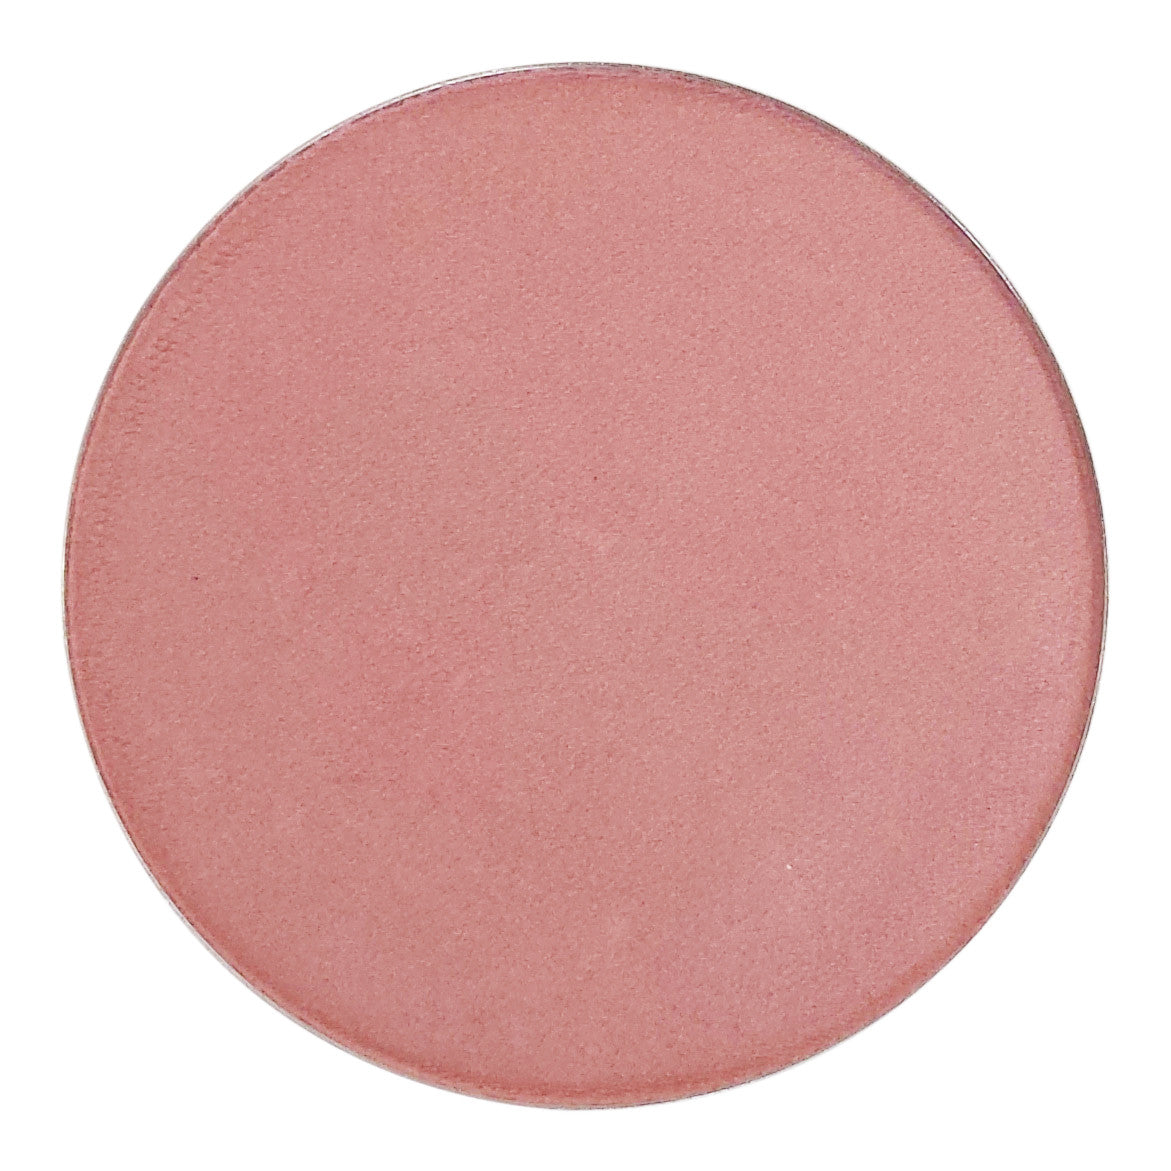 Pure Anada Pressed Mineral Blush Sweet Pea